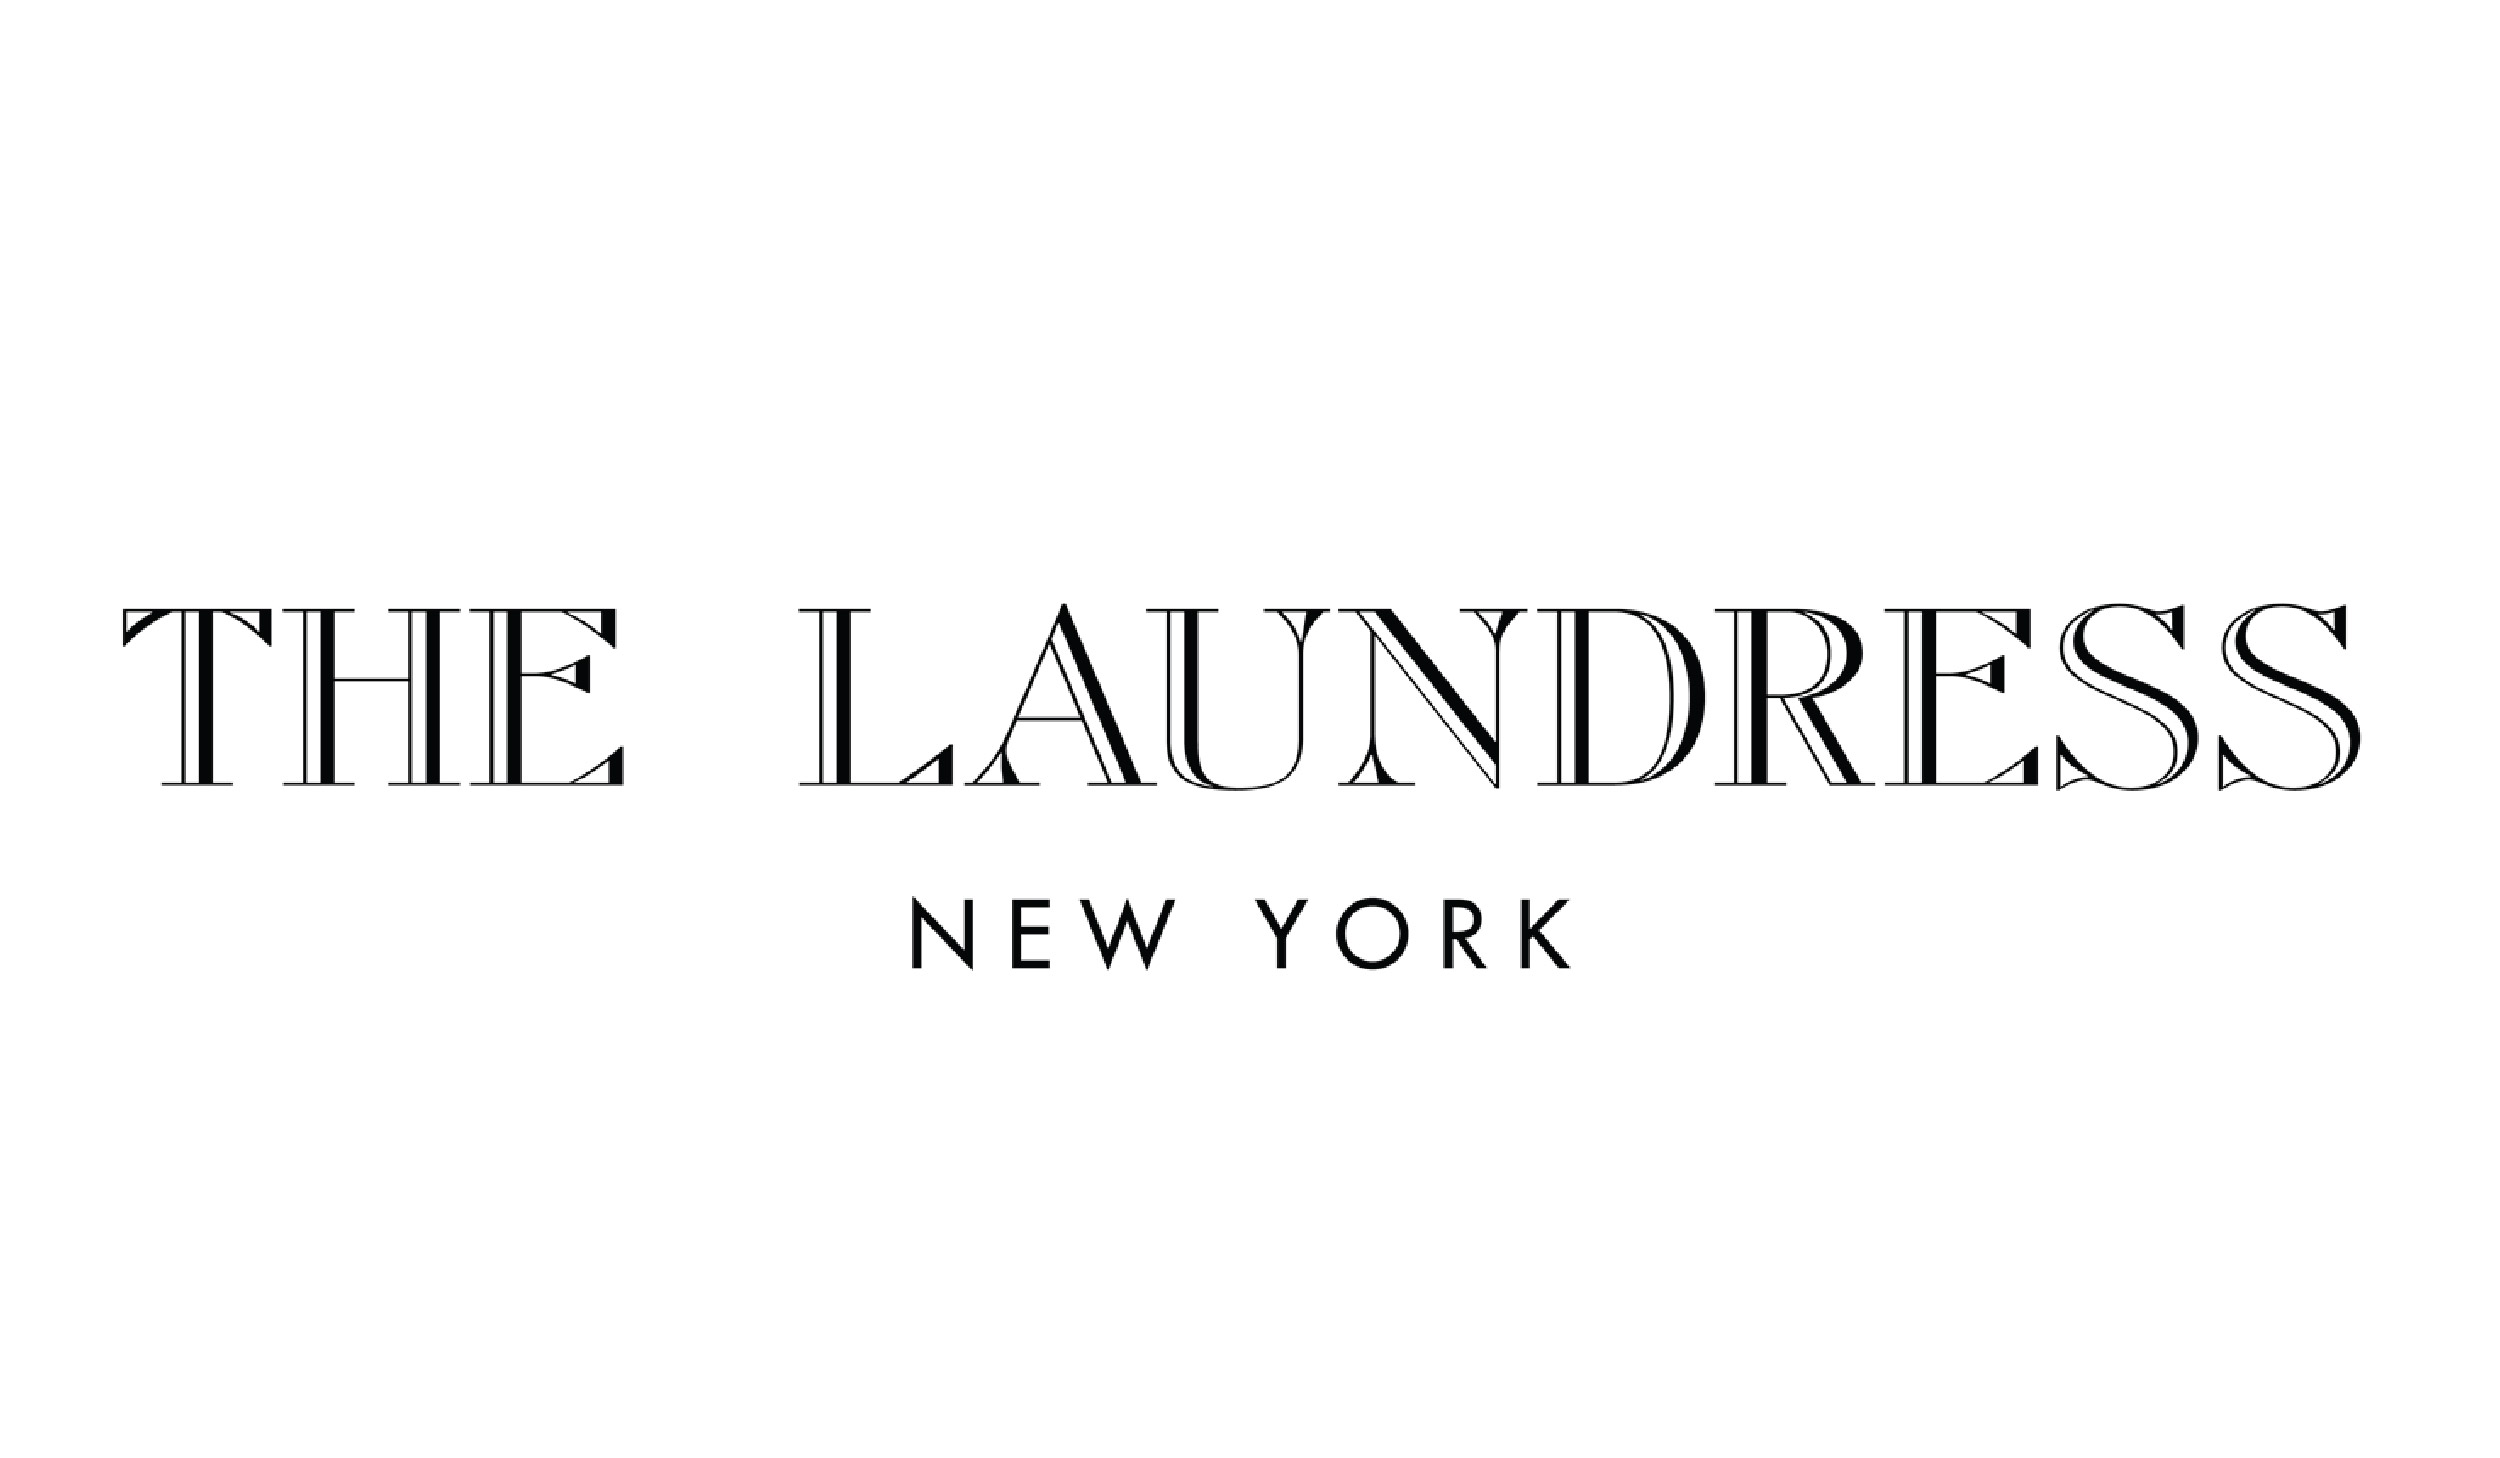 The Laundress - As Gwen and Lindsey invested in building their wardrobes, they were confronted with the frustration of maintaining them; replacing prematurely worn items and paying painful dry cleaning bills. Alongside their soaps and detergents they have expanded into home soft storage, clothing organization and other accessories.